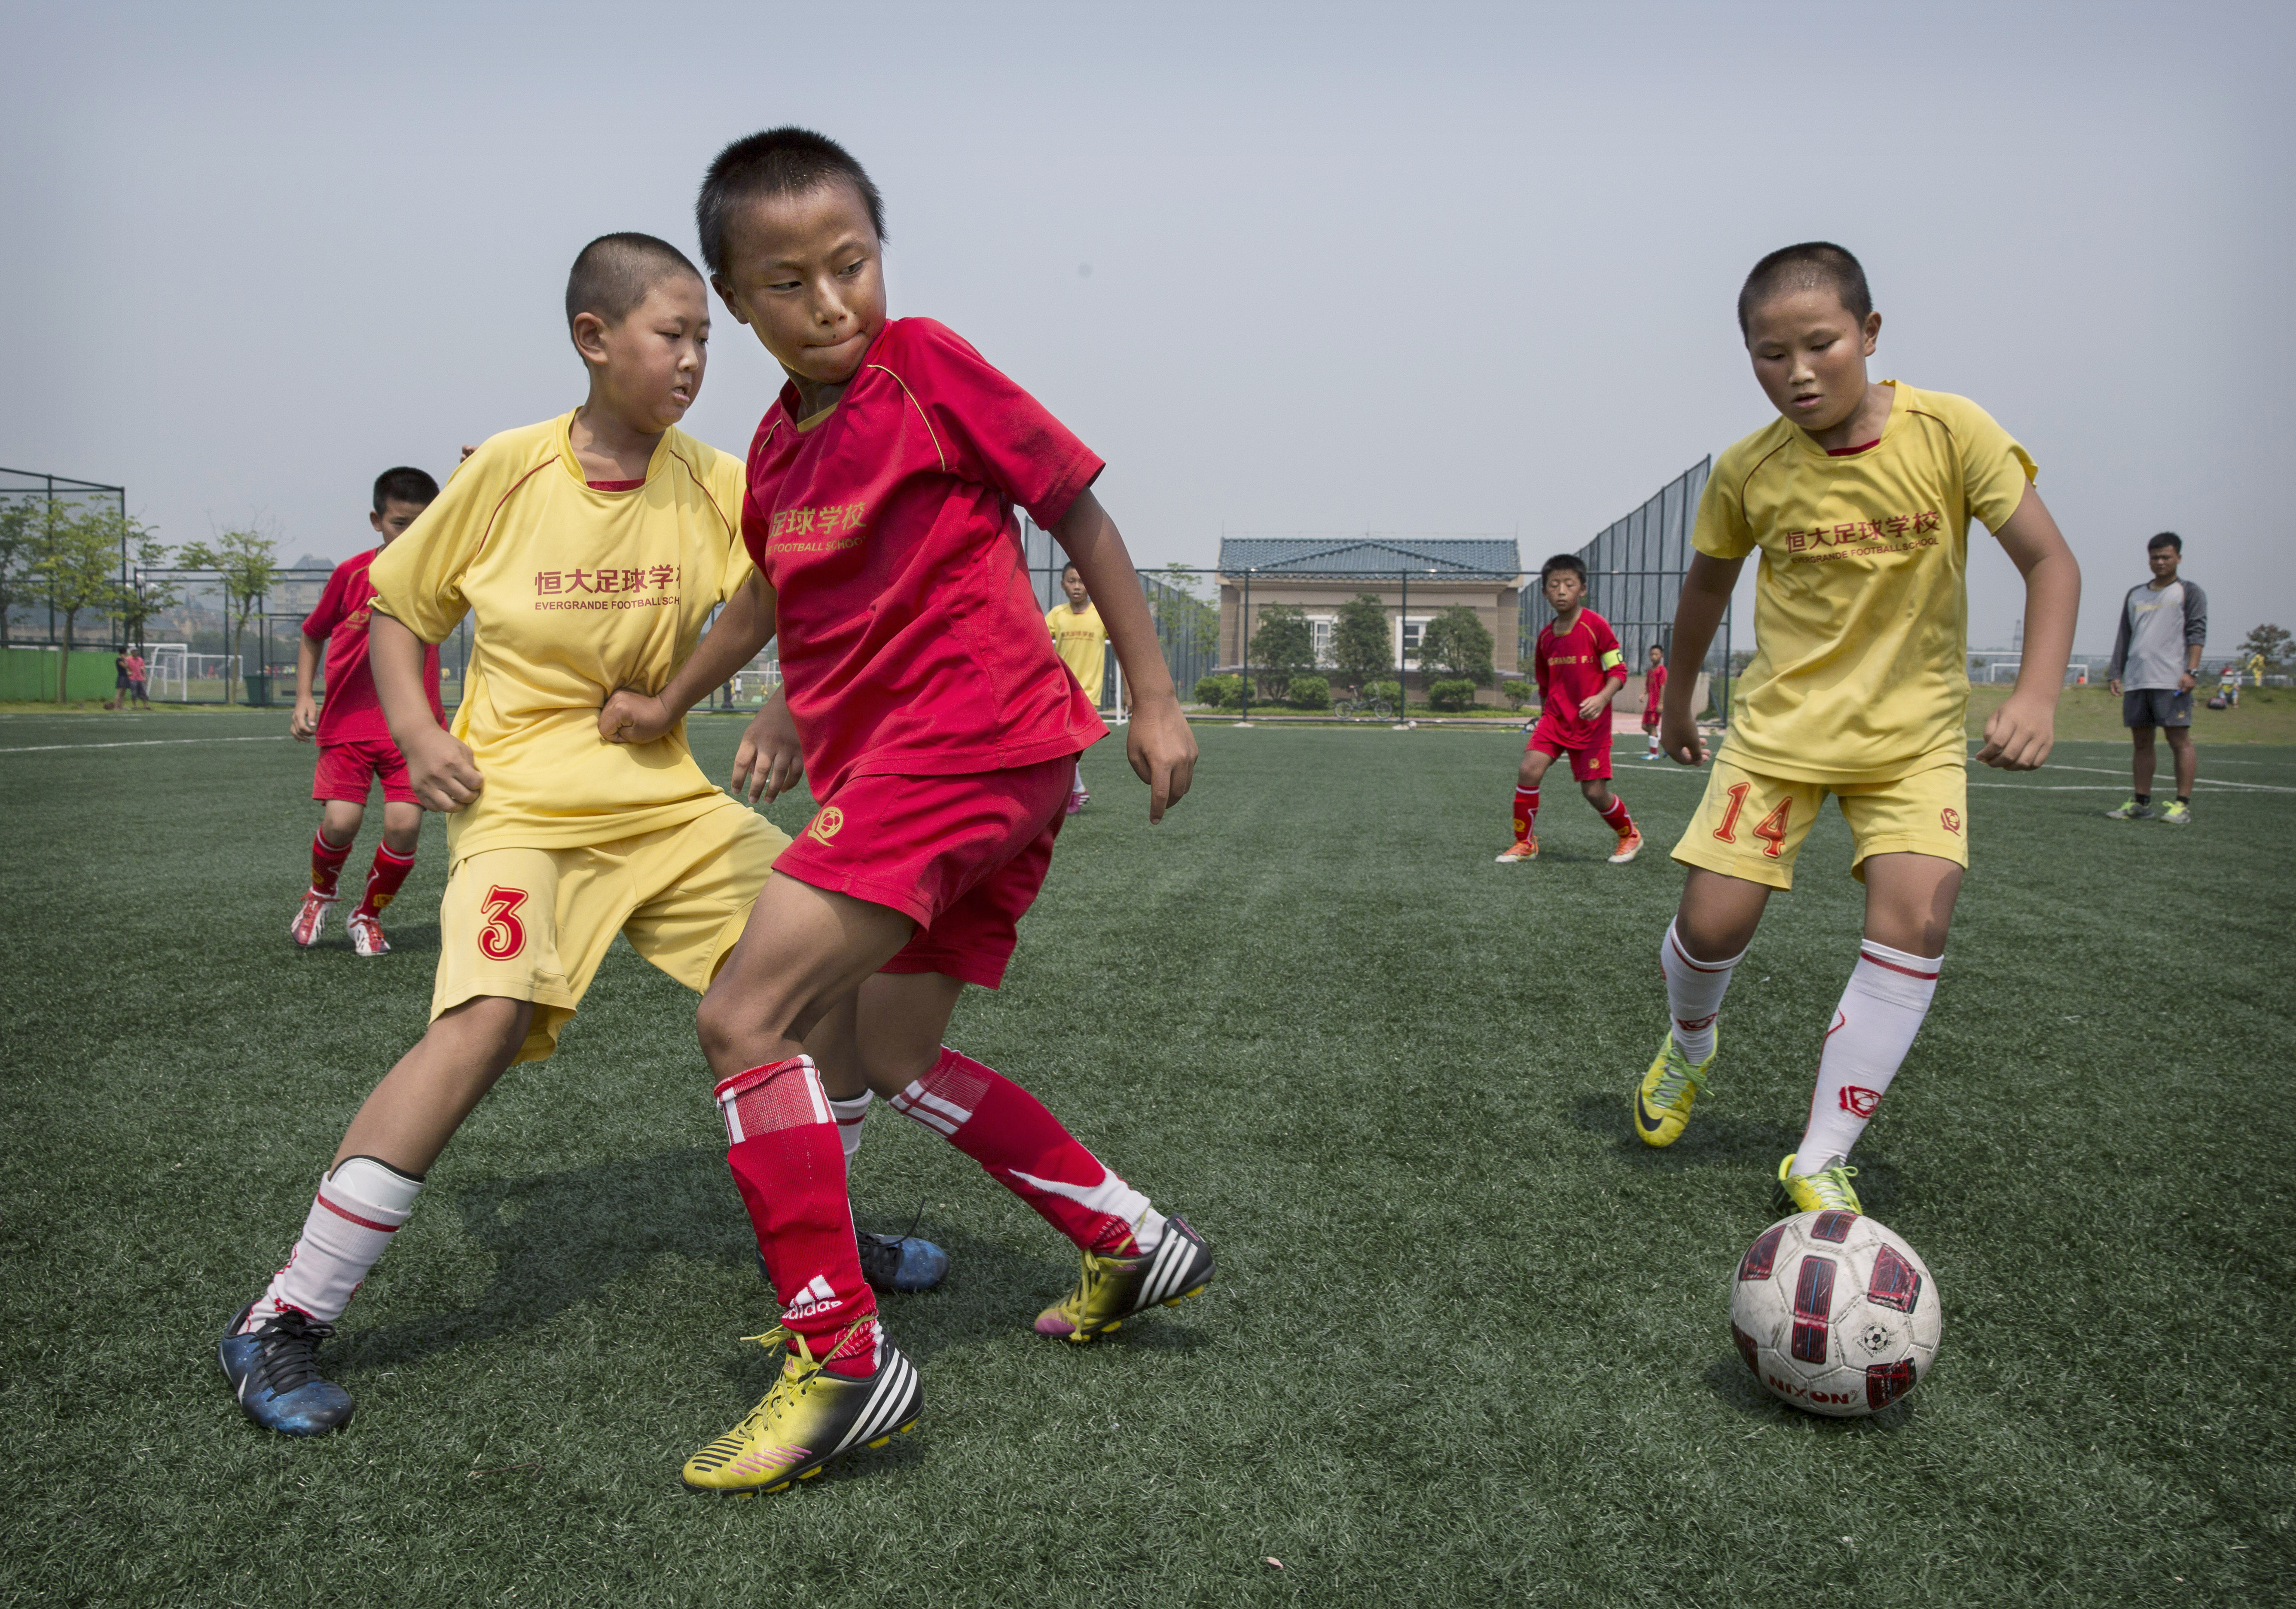 QINGYUAN, CHINA - JUNE 14: Young Chinese students play during a match on a practice pitch at the Evergrande International Football School on June 14, 2014 near Qingyuan in Guangdong Province, China. The sprawling 167-acre campus is the brainchild of property tycoon Xu Jiayin, whose ambition is to train a generation of young athletes to establish China as a football powerhouse. The school is considered the largest football academy in the world with 2400 students, more than 50 pitches and a squad of Spanish coaches through a partnership with Real Madrid. (Photo by Kevin Frayer/Getty Images)